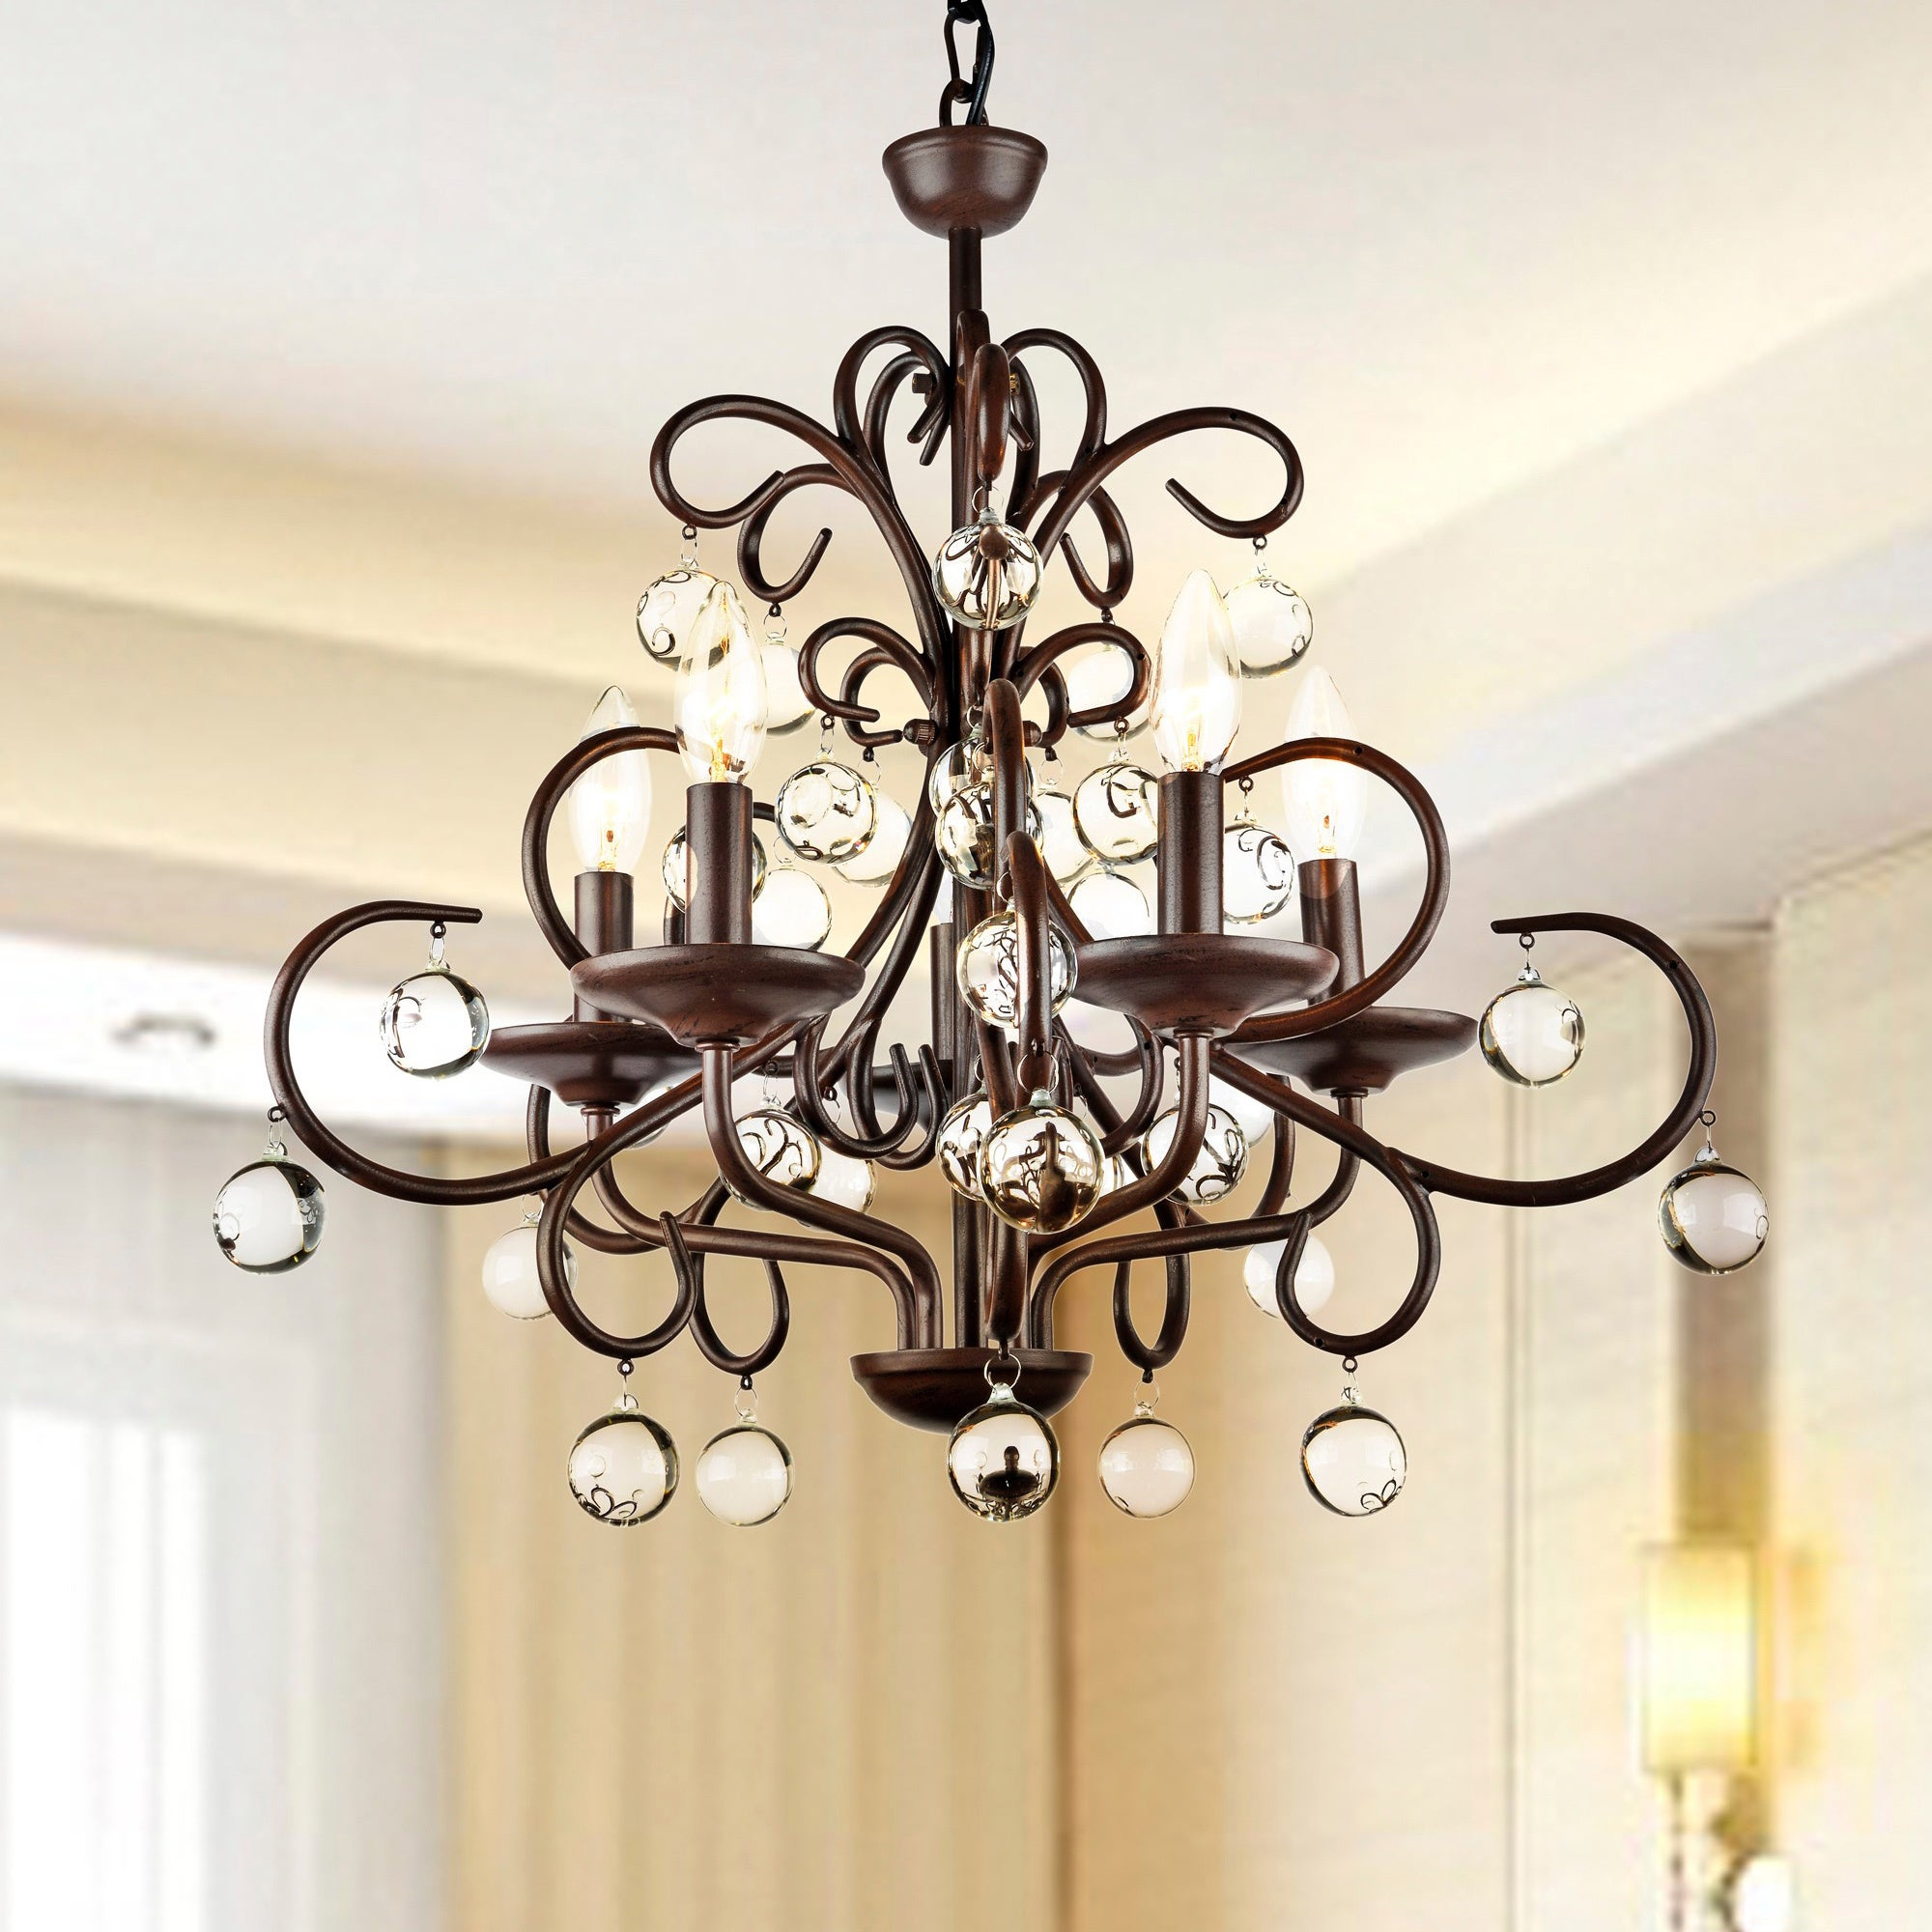 grand product world old crystal chandeliers chandelier wrought and lighting foyer by glow iron